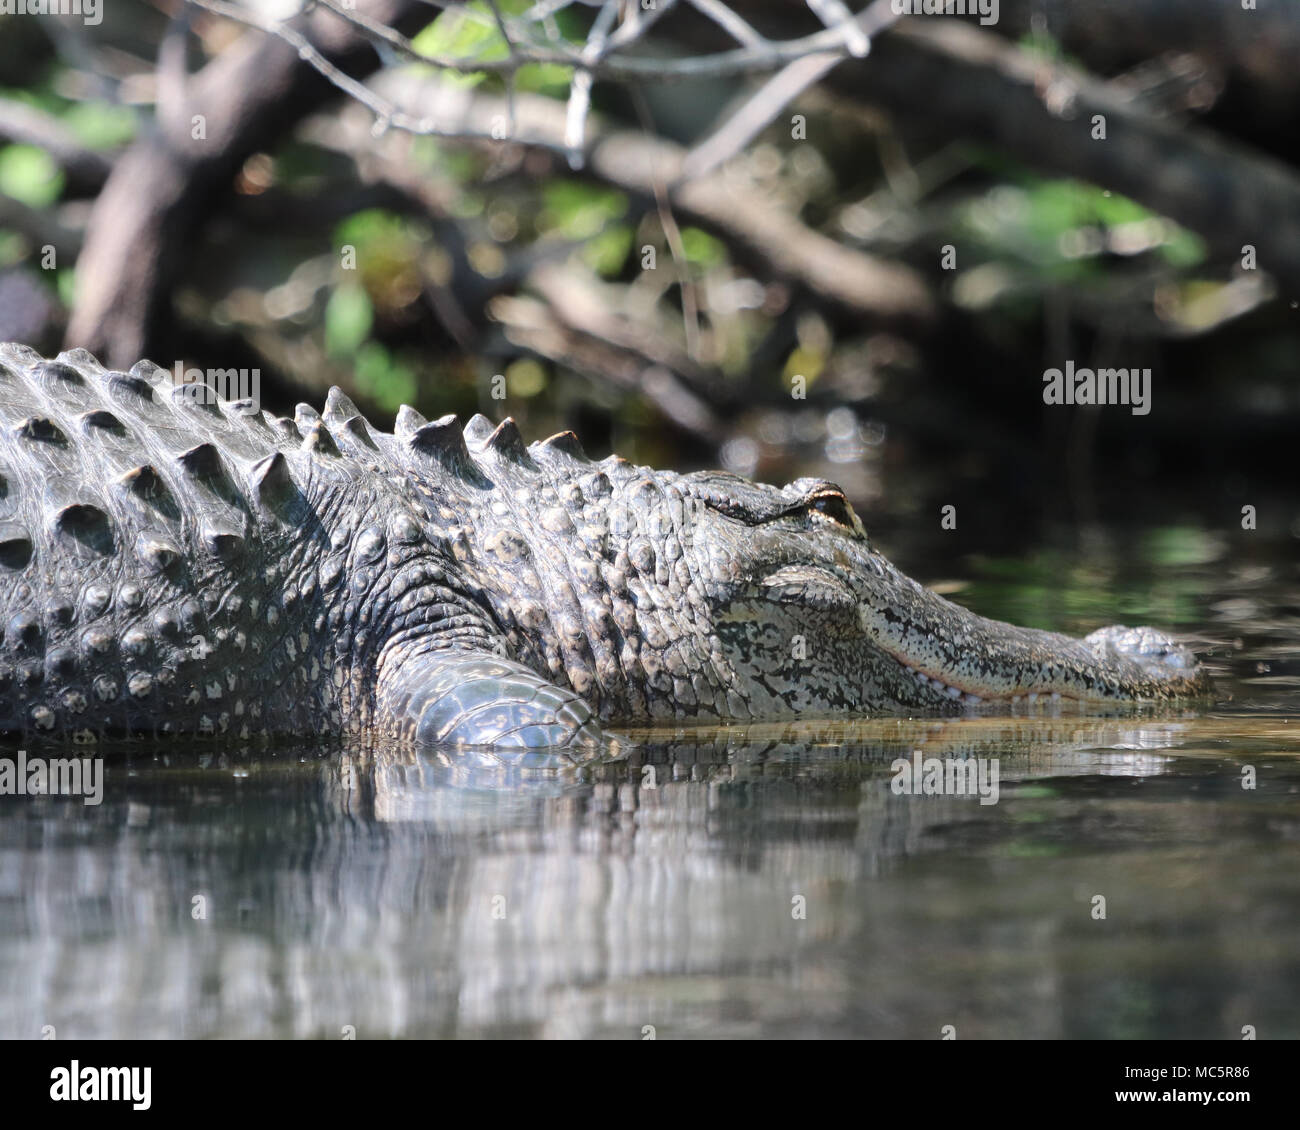 Large Alligator at Rainbow Springs, Dunnellon Florida - Stock Image